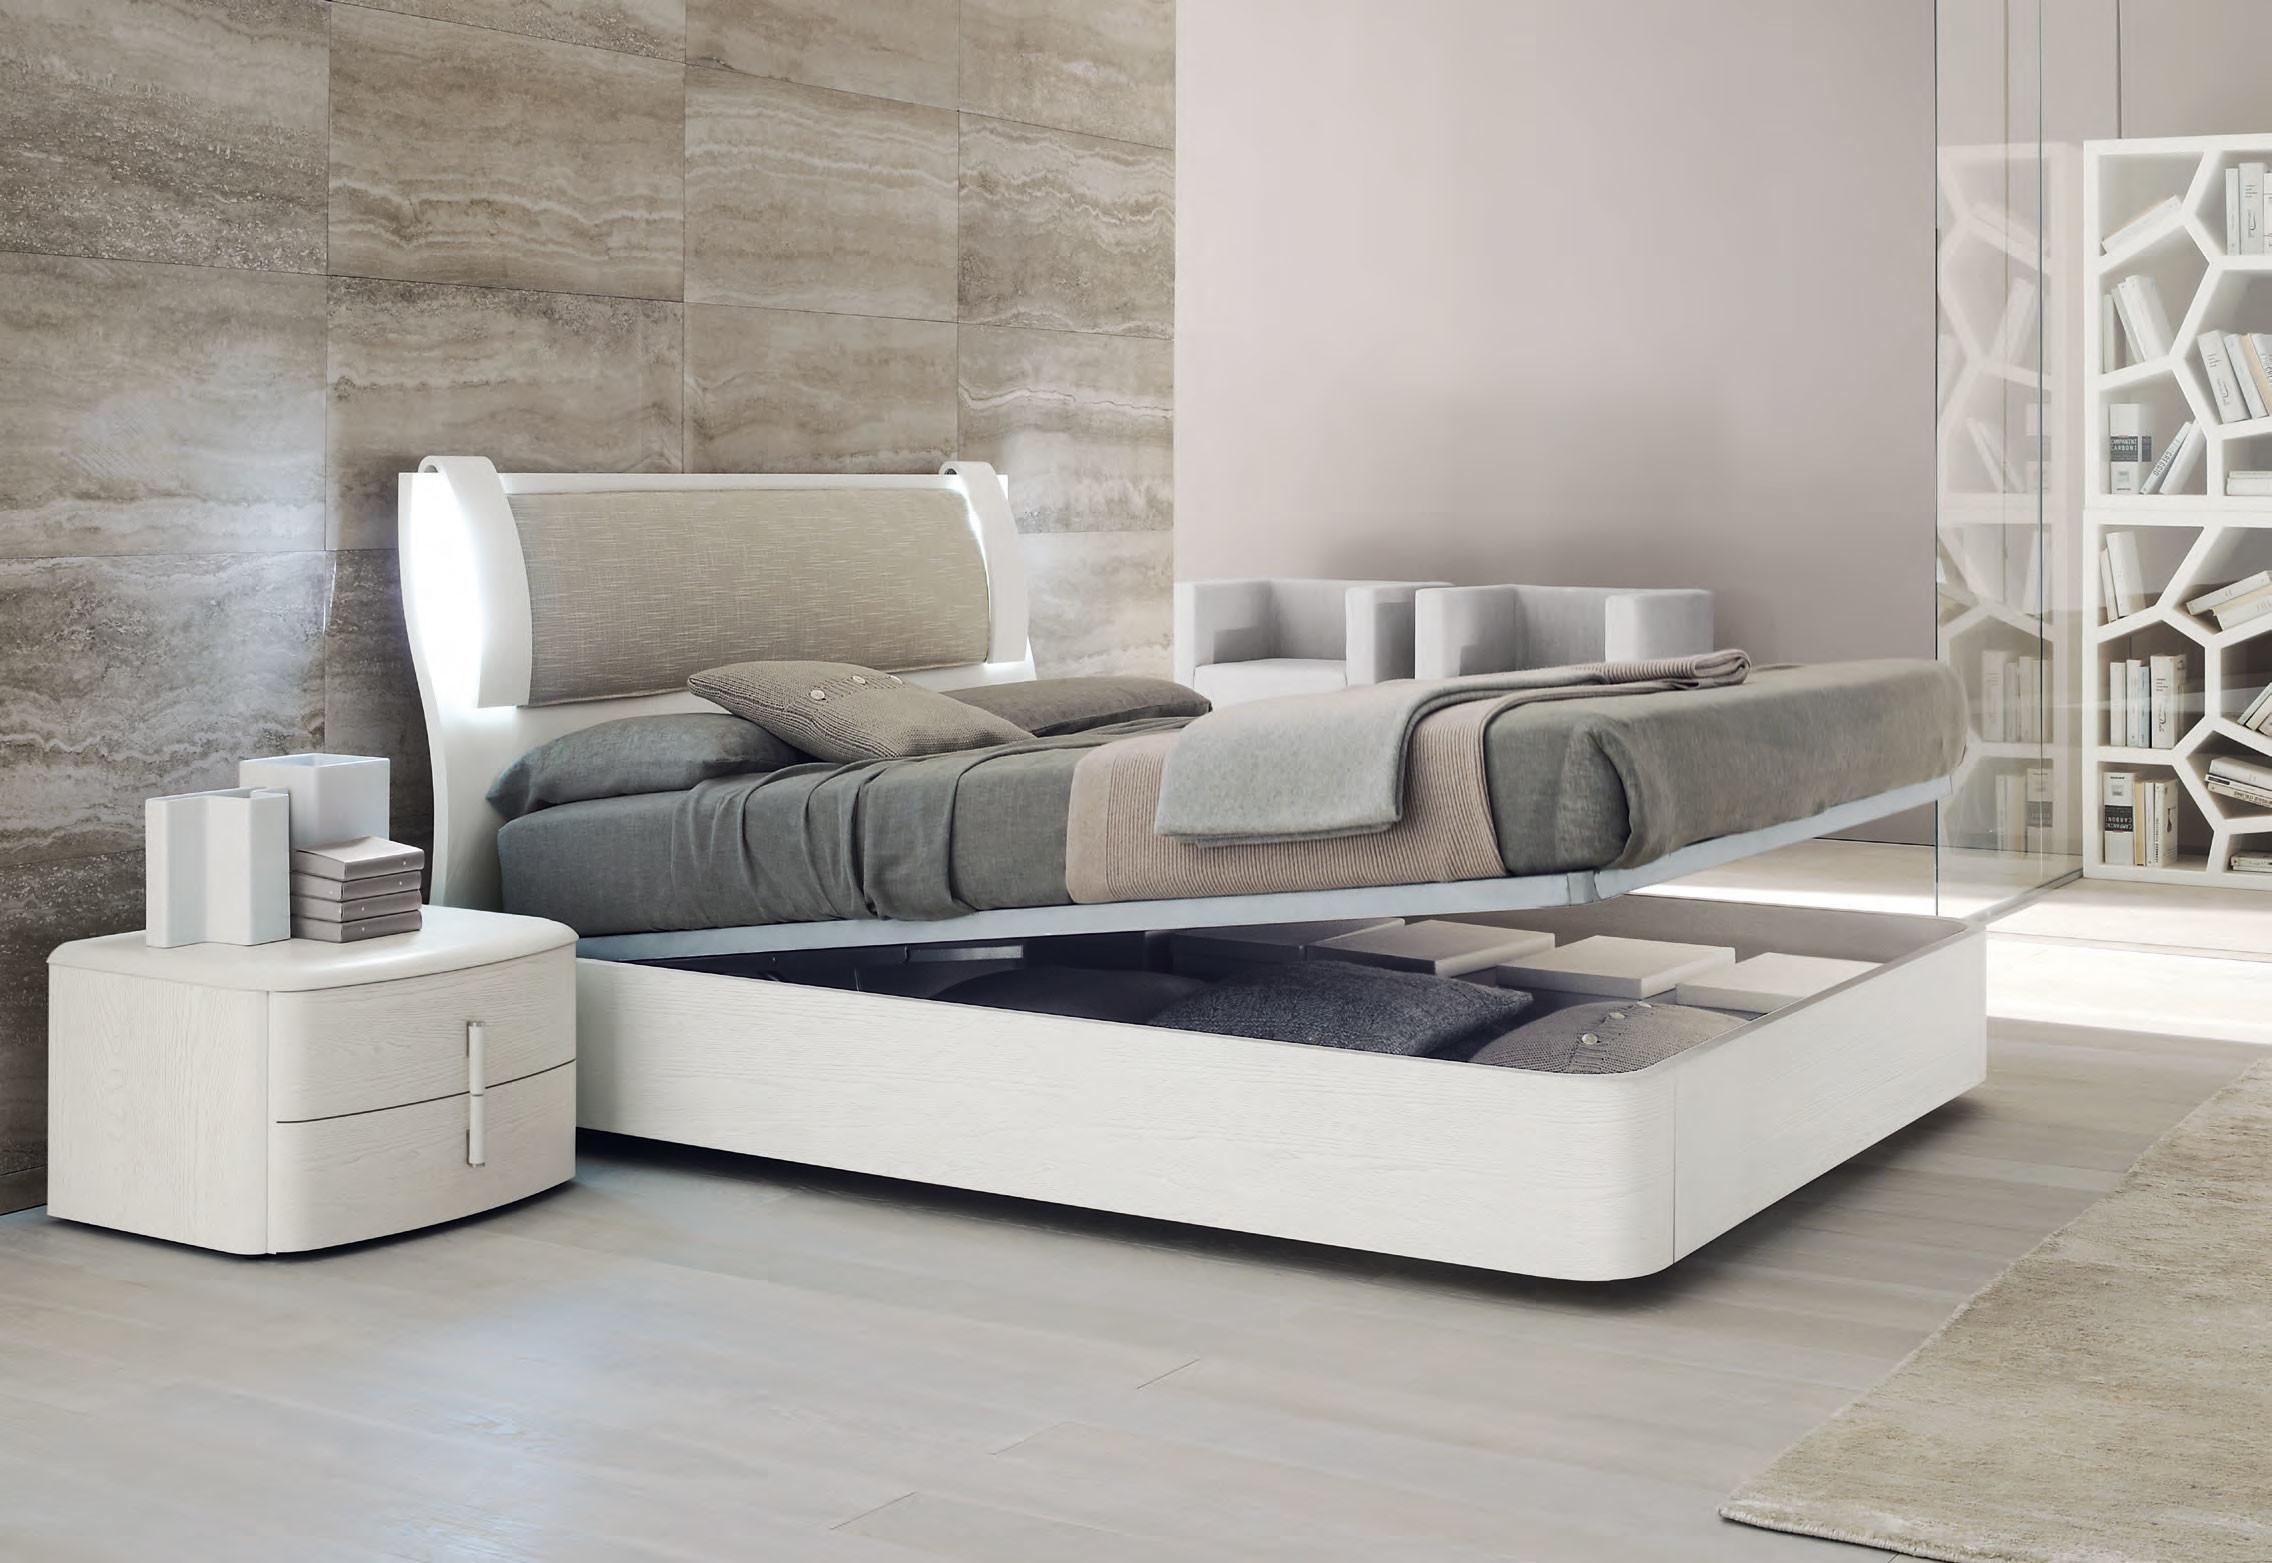 Charming Italian Contemporary Furniture Manufacturers